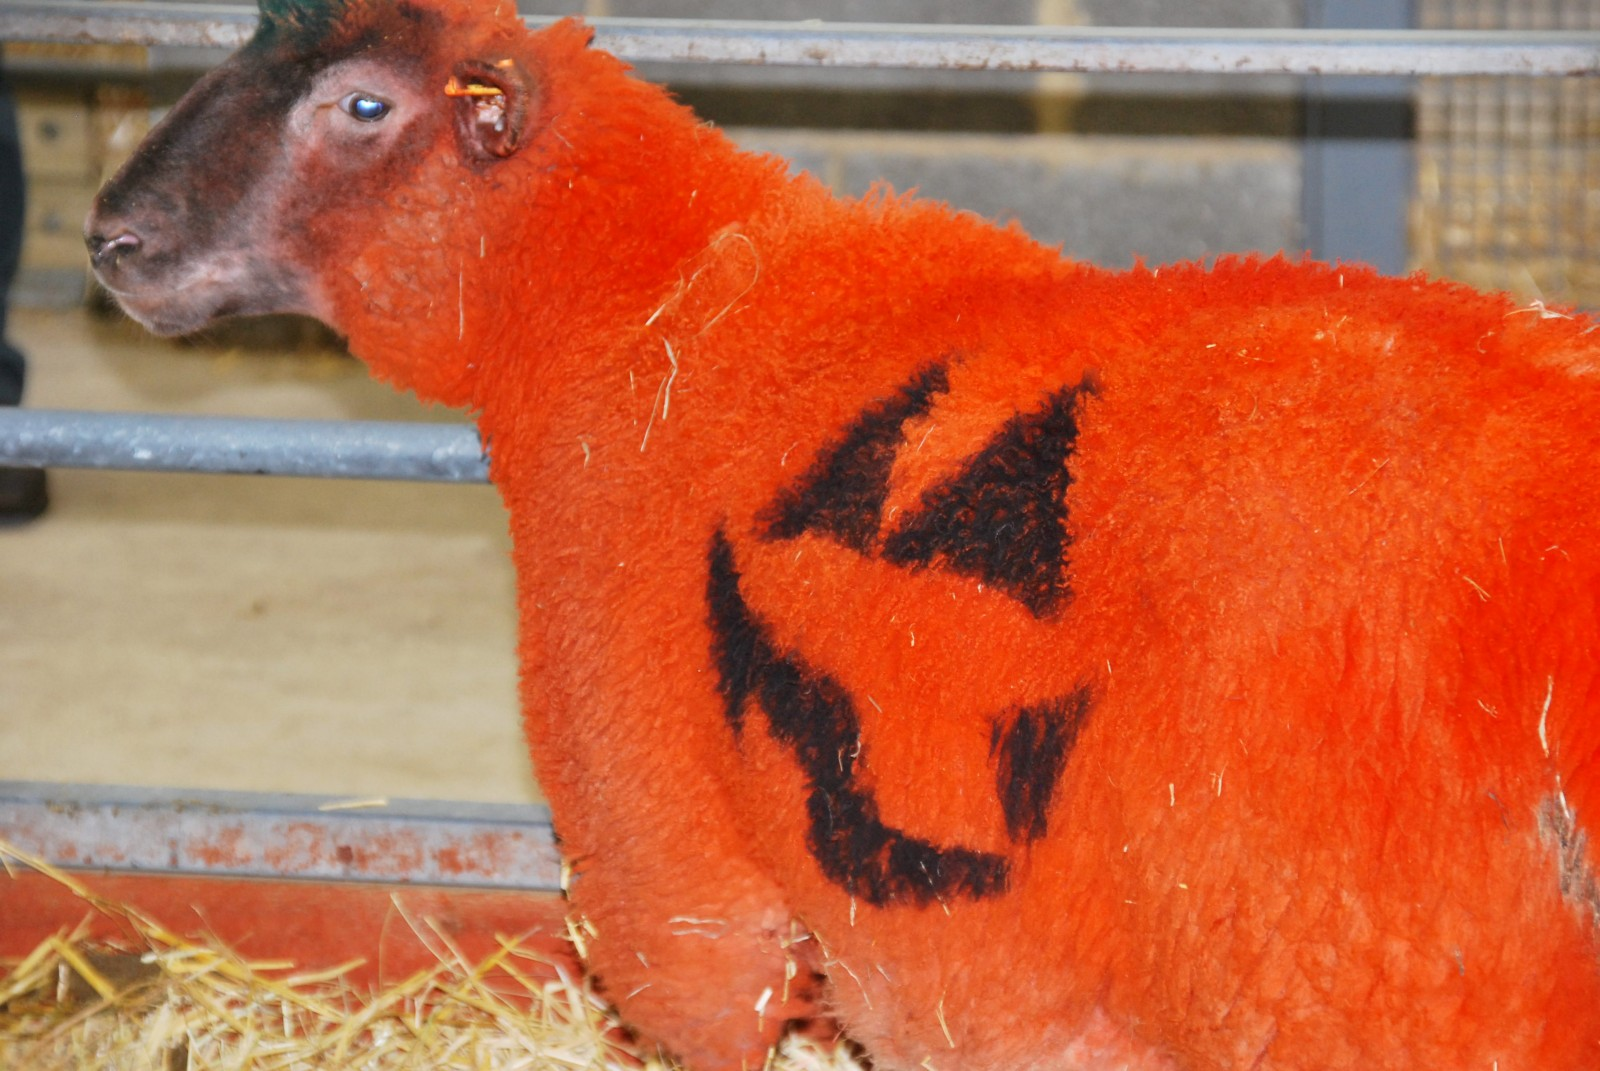 Ewe looking at me? Halloween fun down at the farm